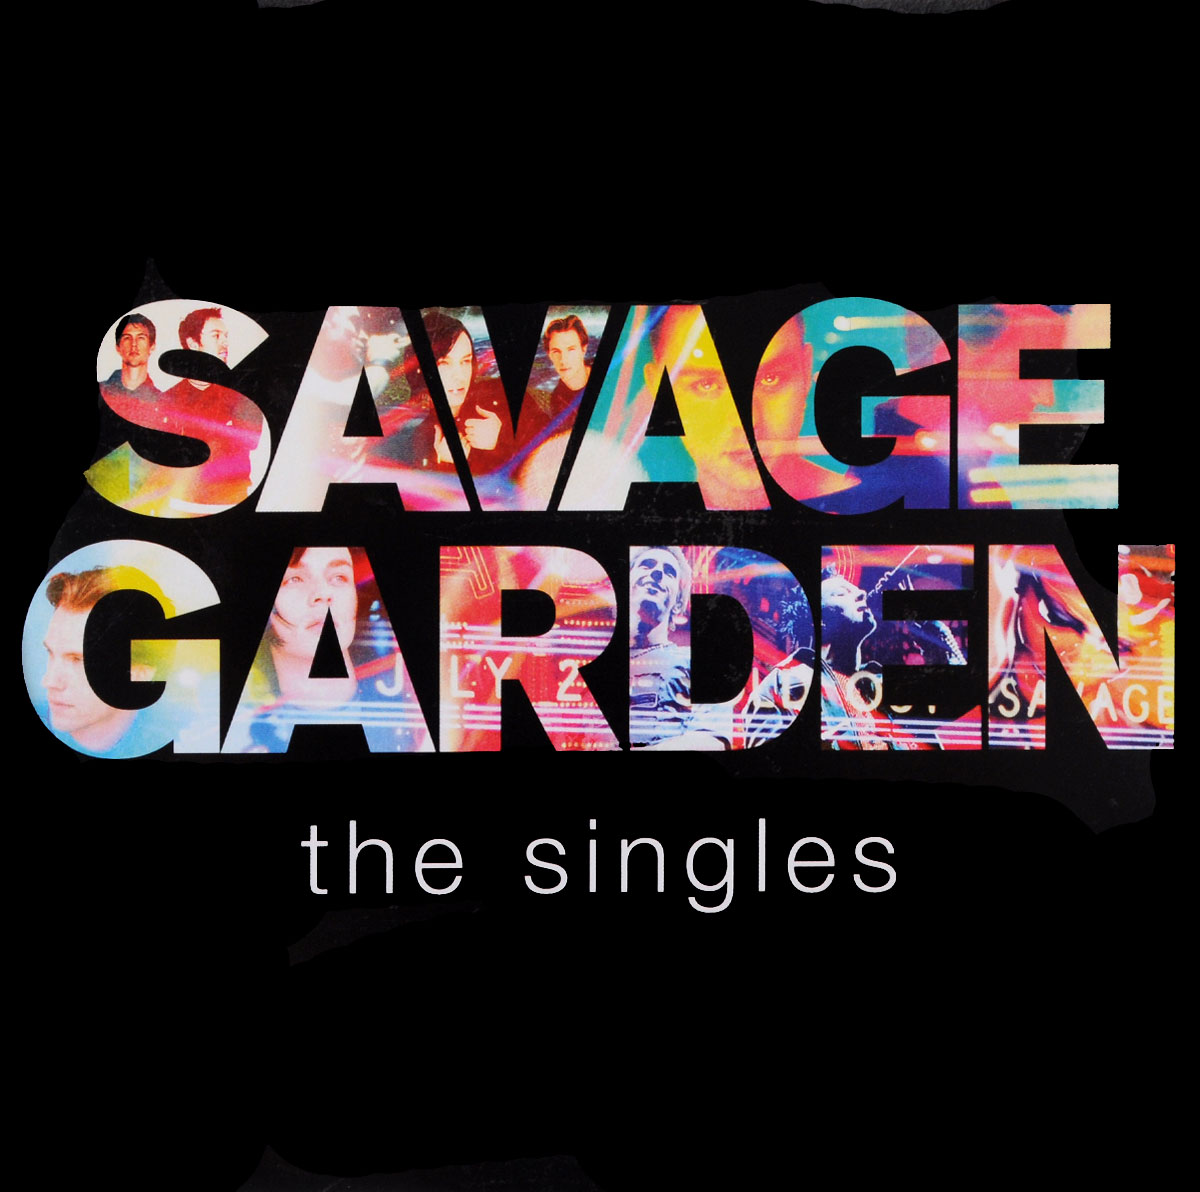 Savage Garden Savage Garden. The Singles savage gear prey40